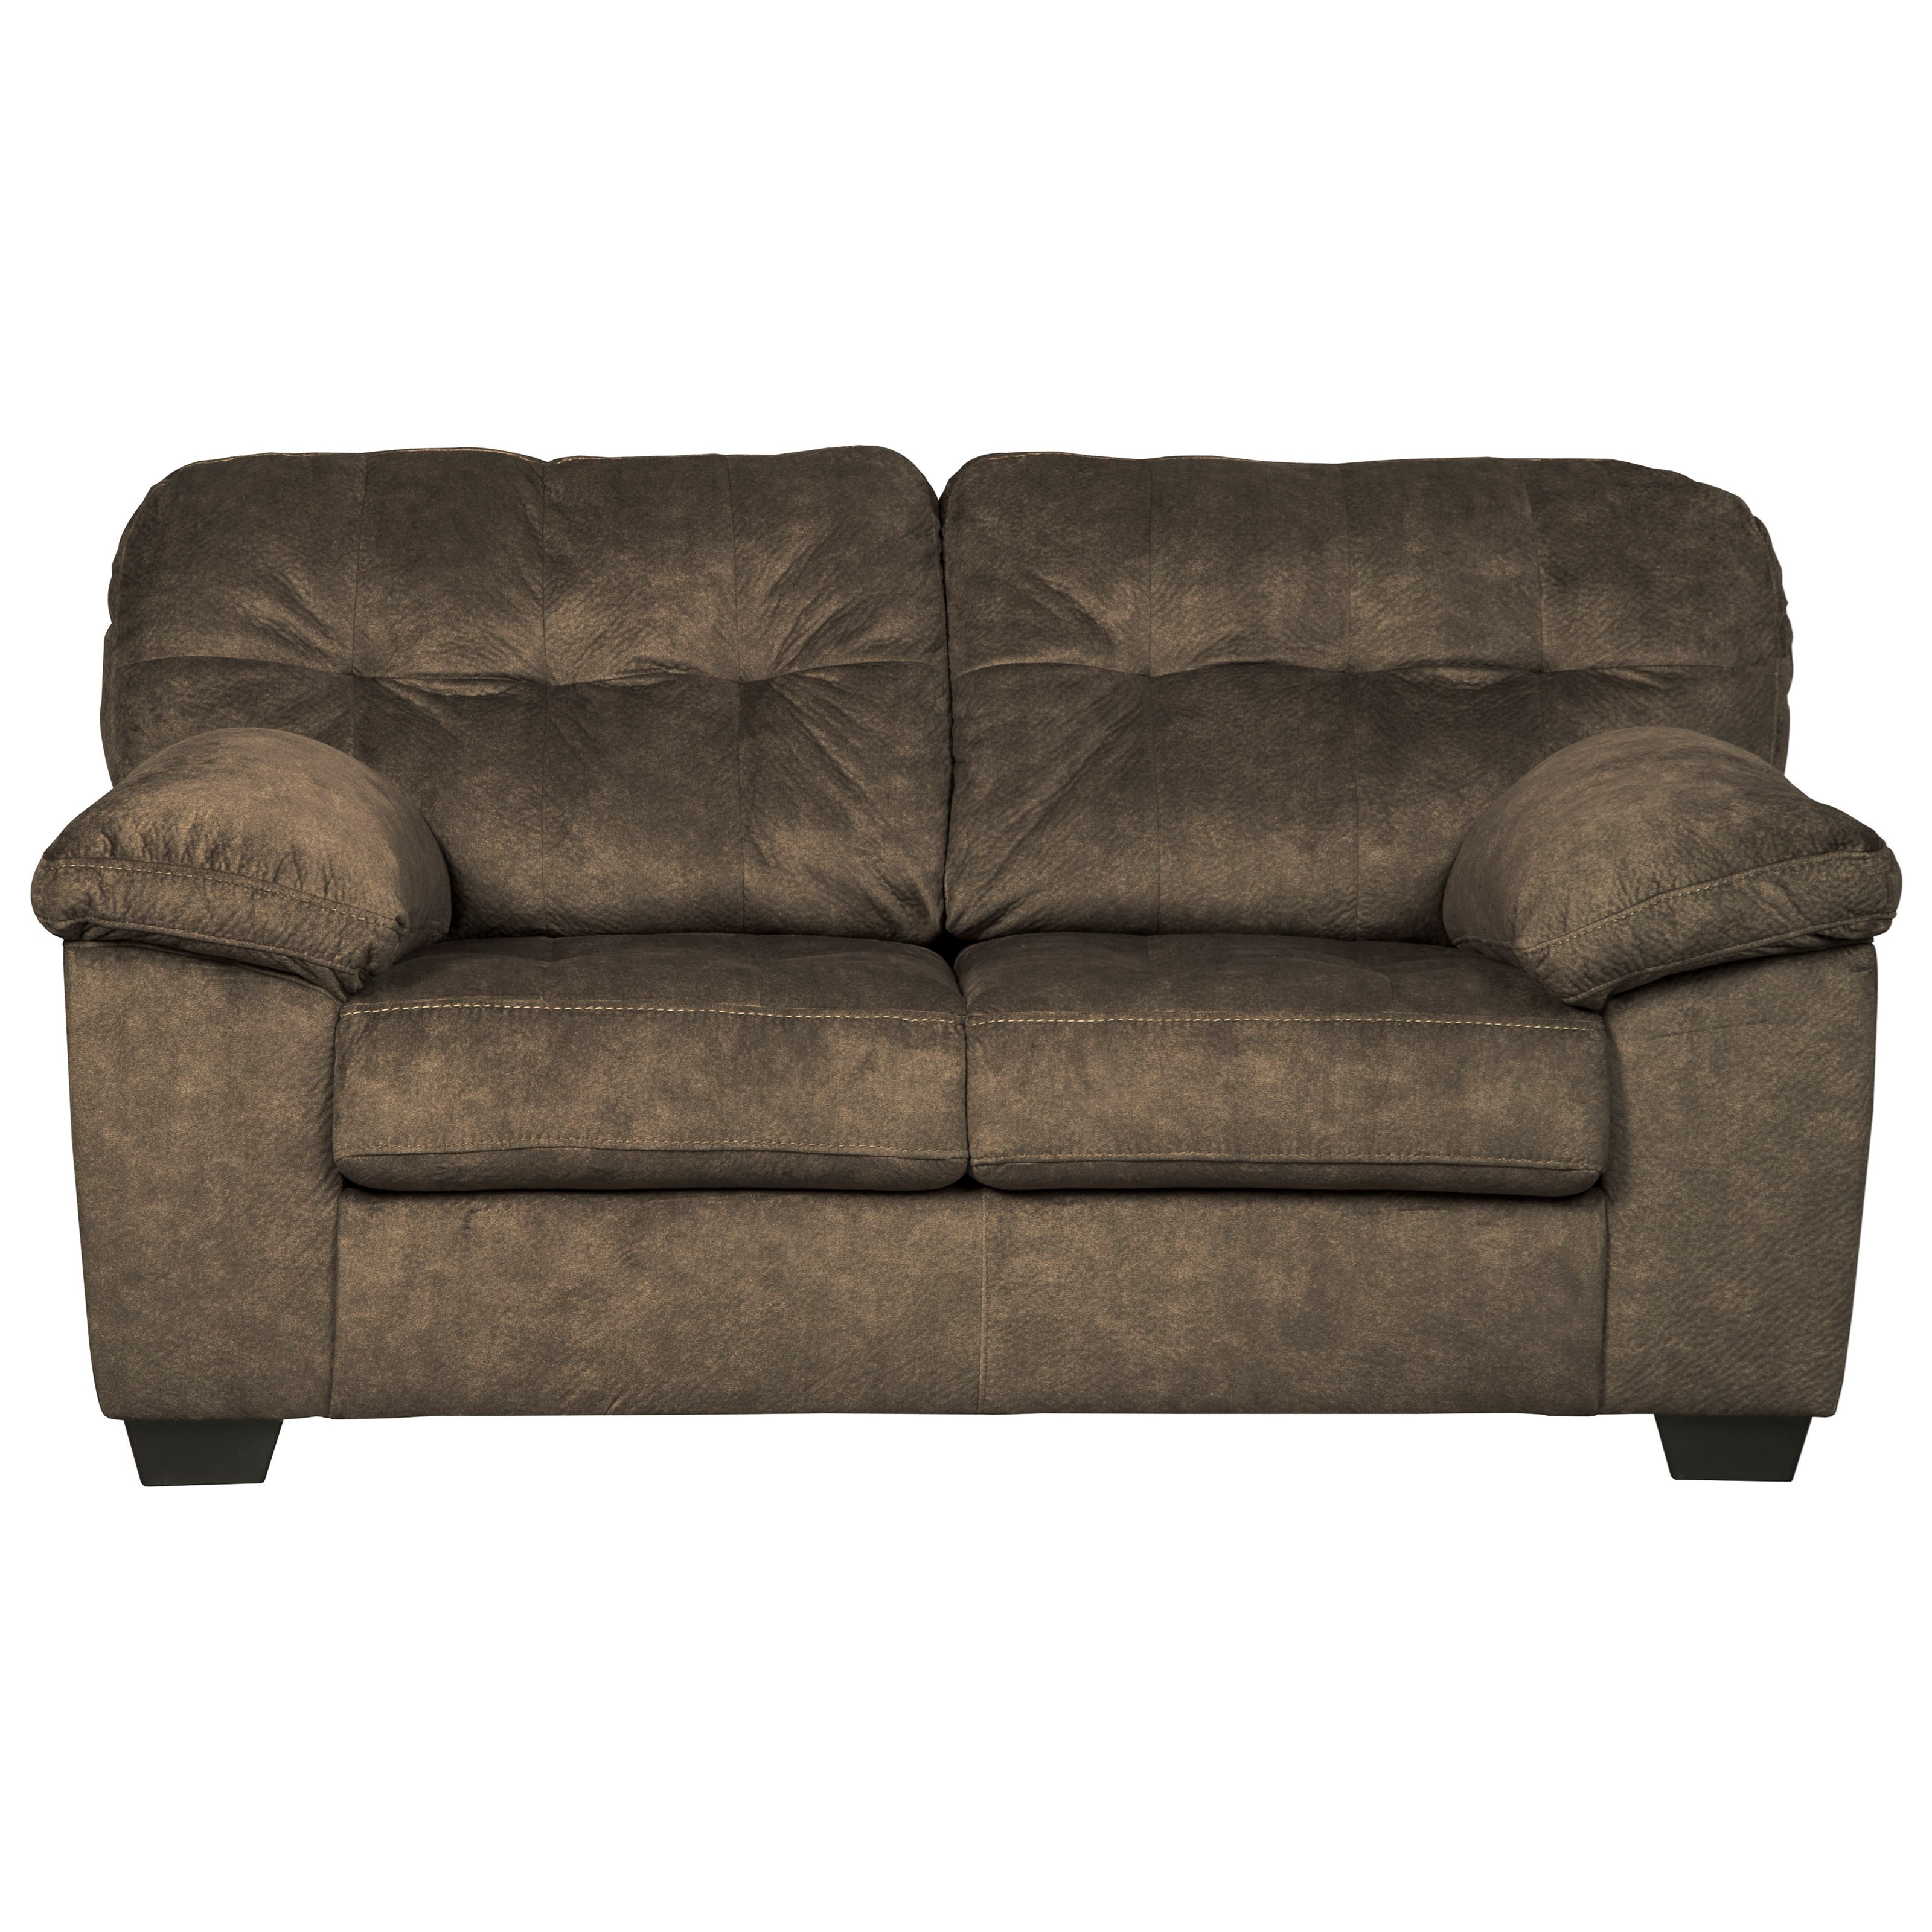 Accrington Loveseat by Signature Design by Ashley at Standard Furniture